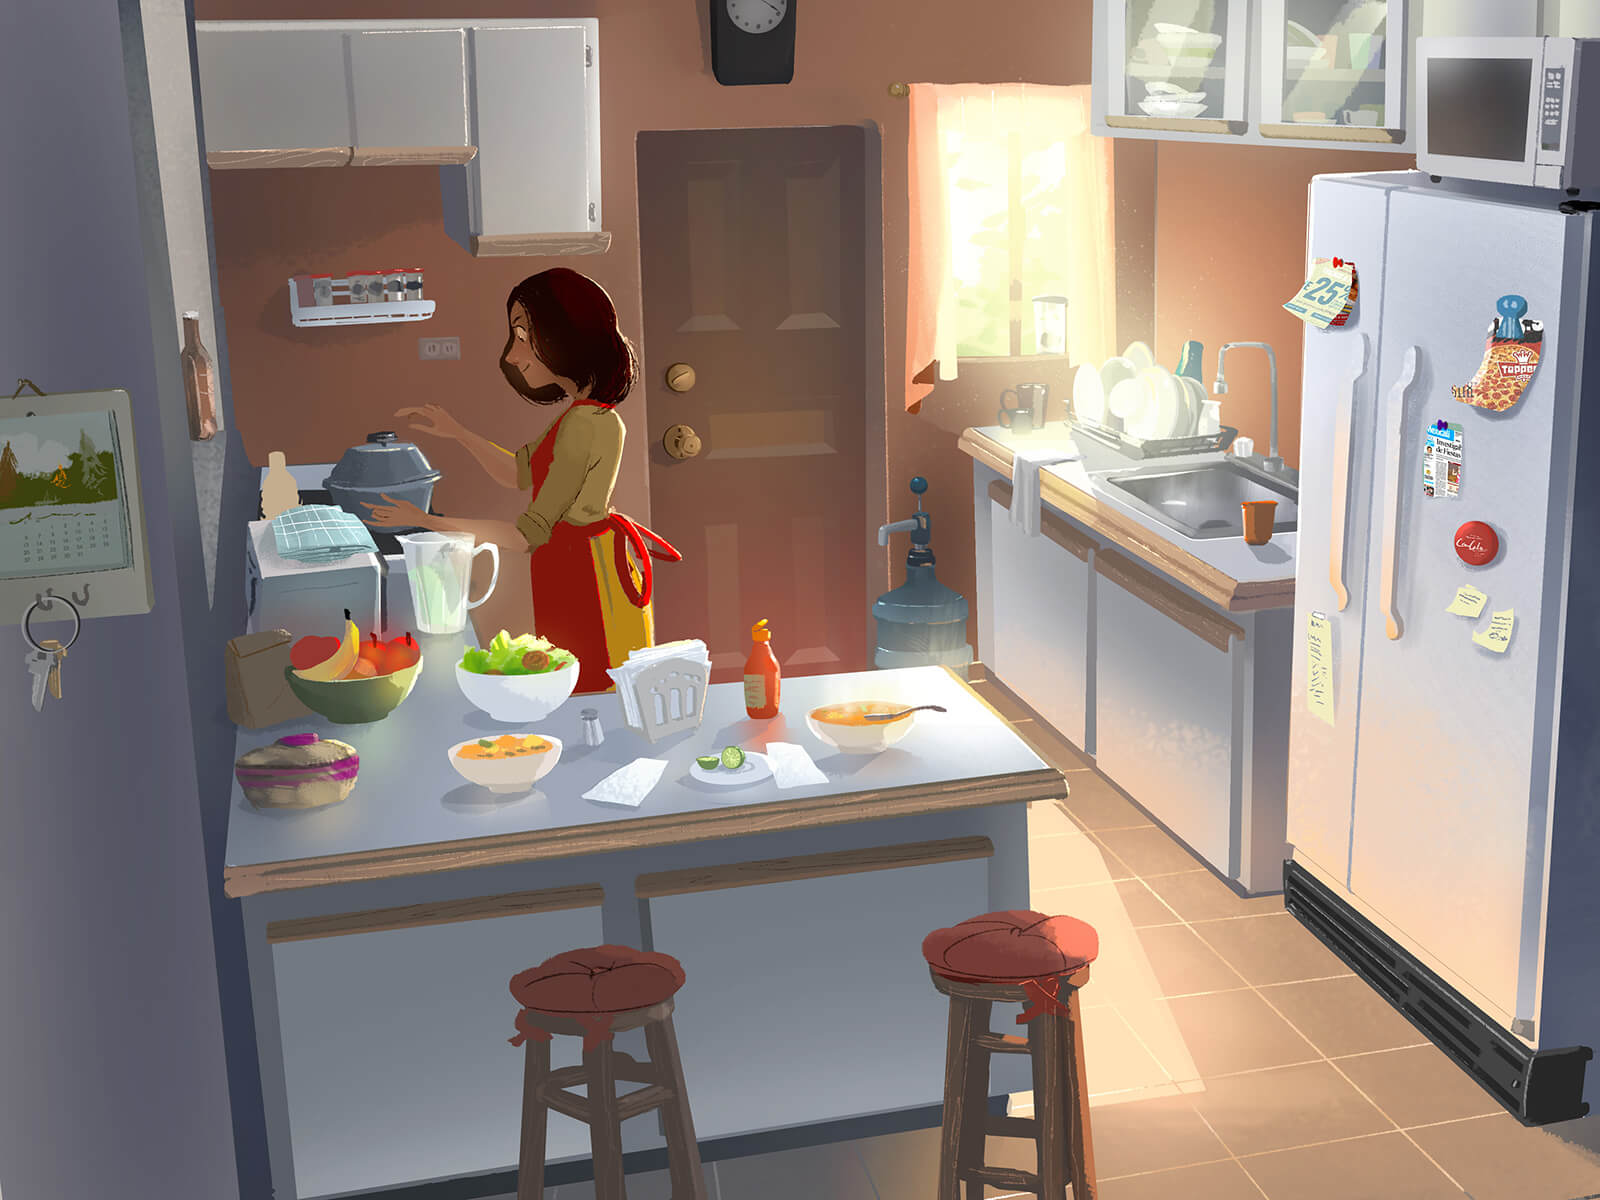 digital painting of a woman cooking at the stove in a small kitchen